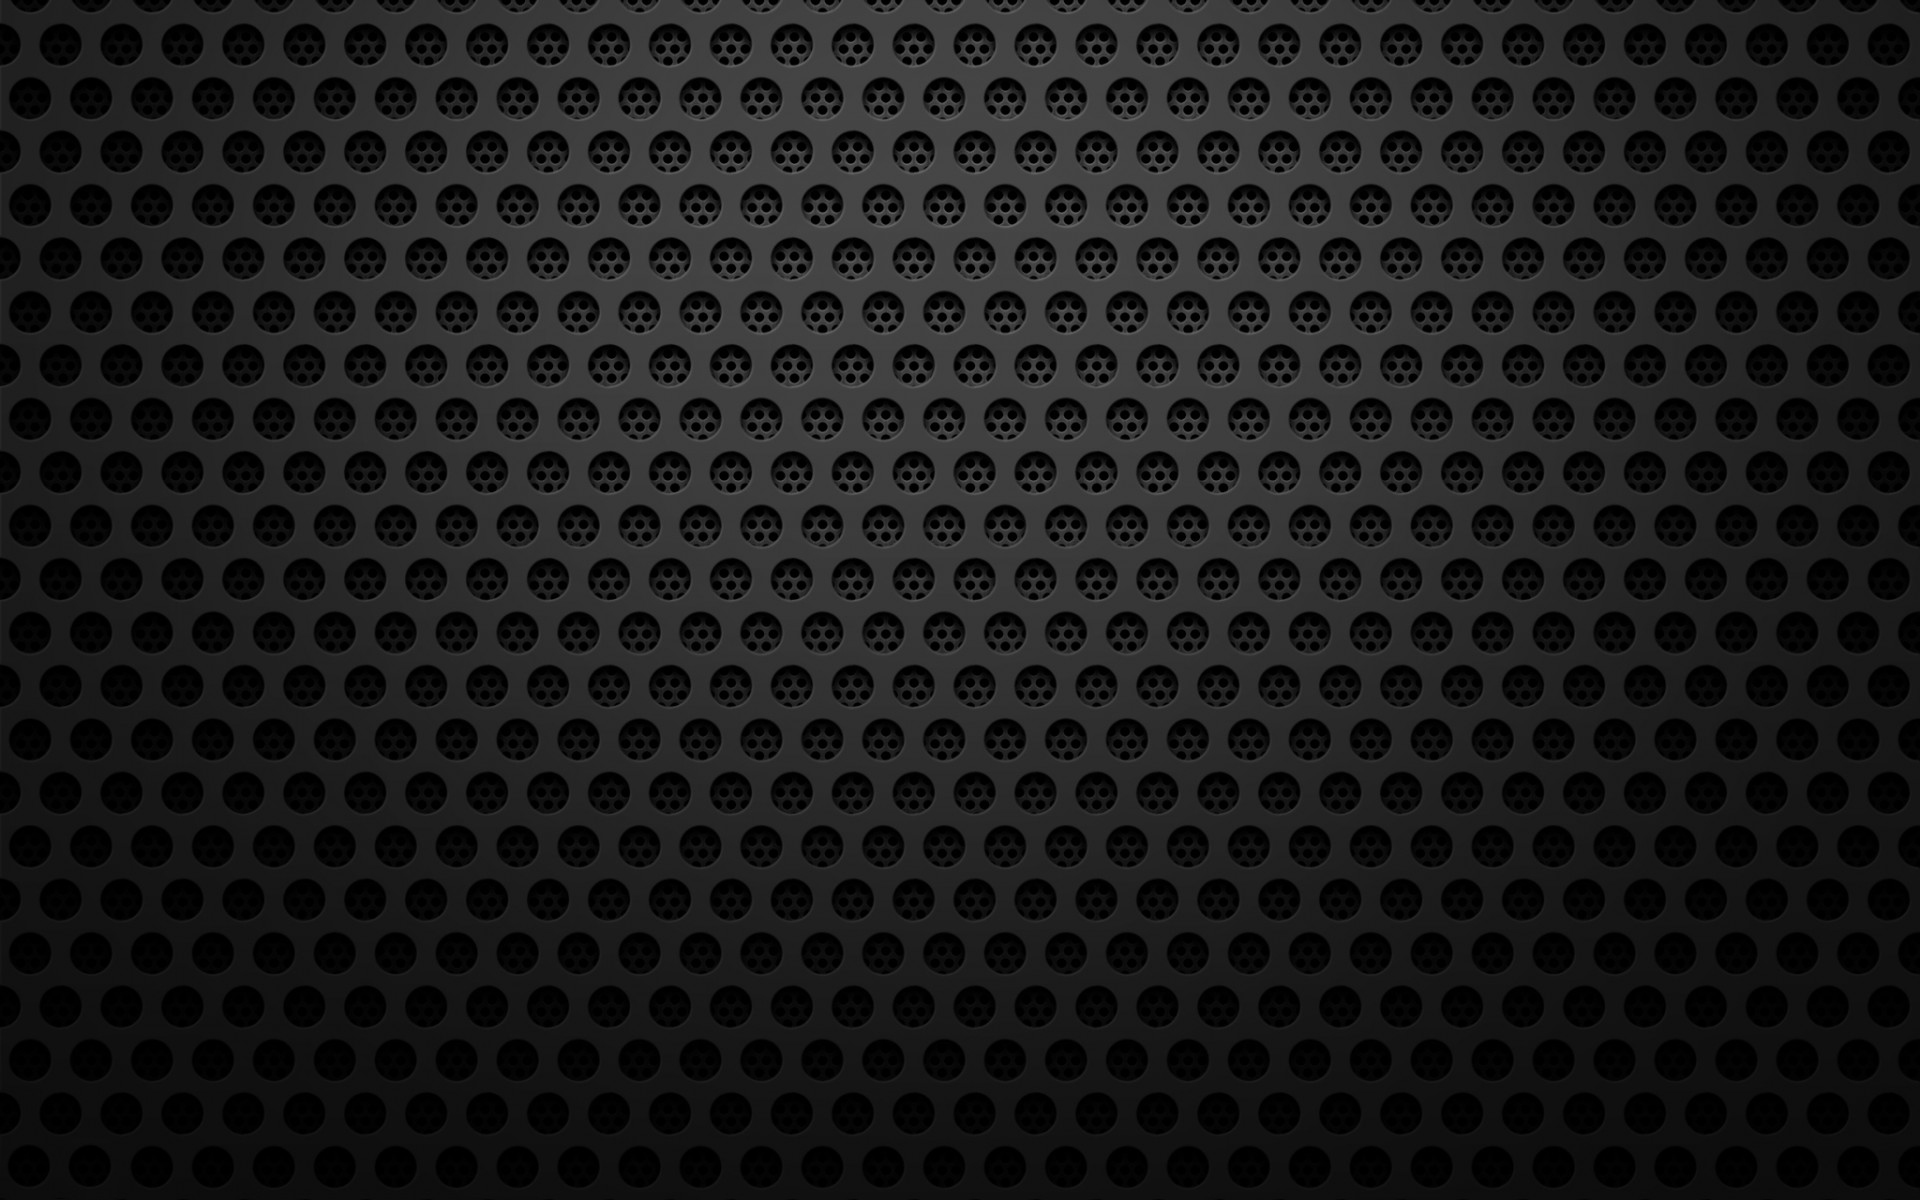 Black-Hole-ipad-3-wallpaper-ipad-wallpaper-retina-display-wallpaper-the-new- ipad-wallpaper-2048×2048-wallpapers-background-patterns-pattern-wallpapers-1920× ...